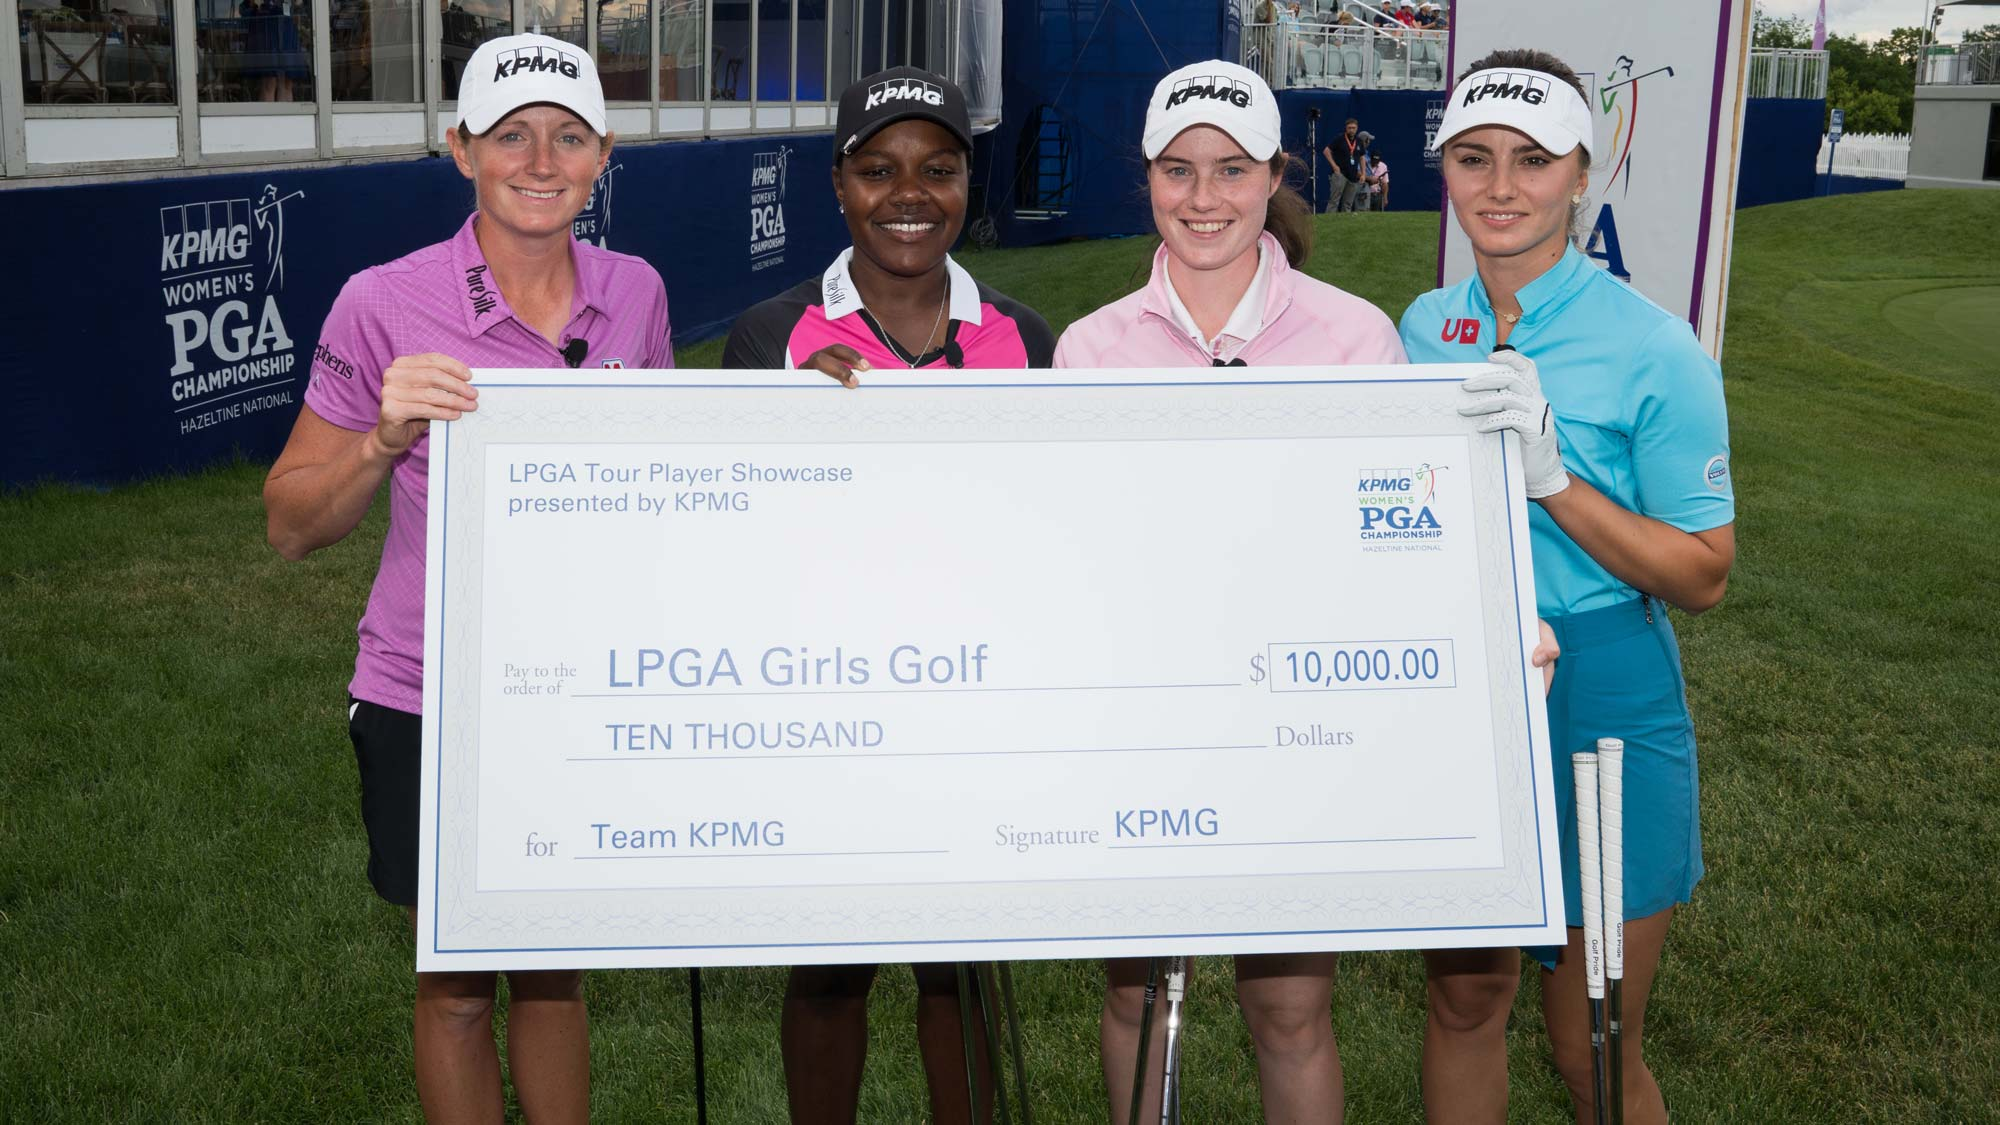 Stacy Lewis, Mariah Stackhouse, Leona Maguire and Klara Spilkova pose for a photo with the winning check during the KPMG Player Showcase for the 65th KPMG Women's PGA Championship